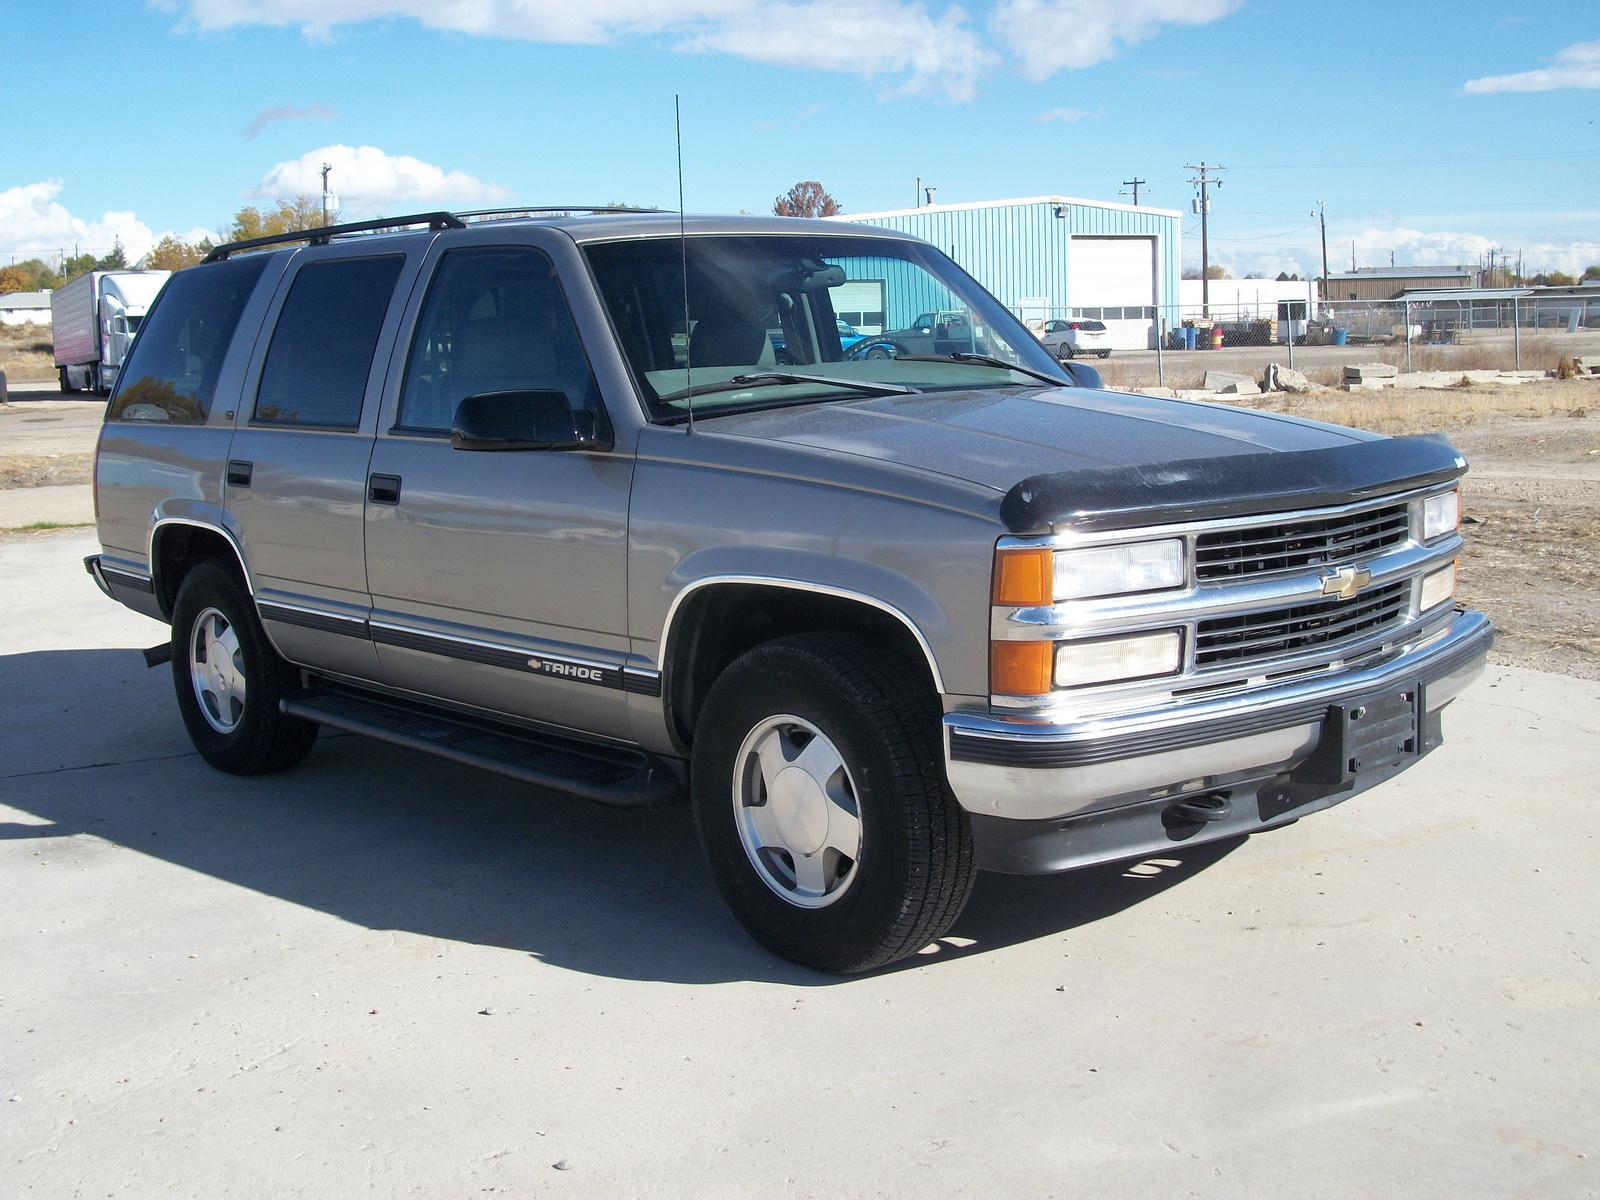 of 1999 chevrolet tahoe 4 dr lt 4wd suv exterior used 2008 chevrolet sexy girl and car photos. Black Bedroom Furniture Sets. Home Design Ideas